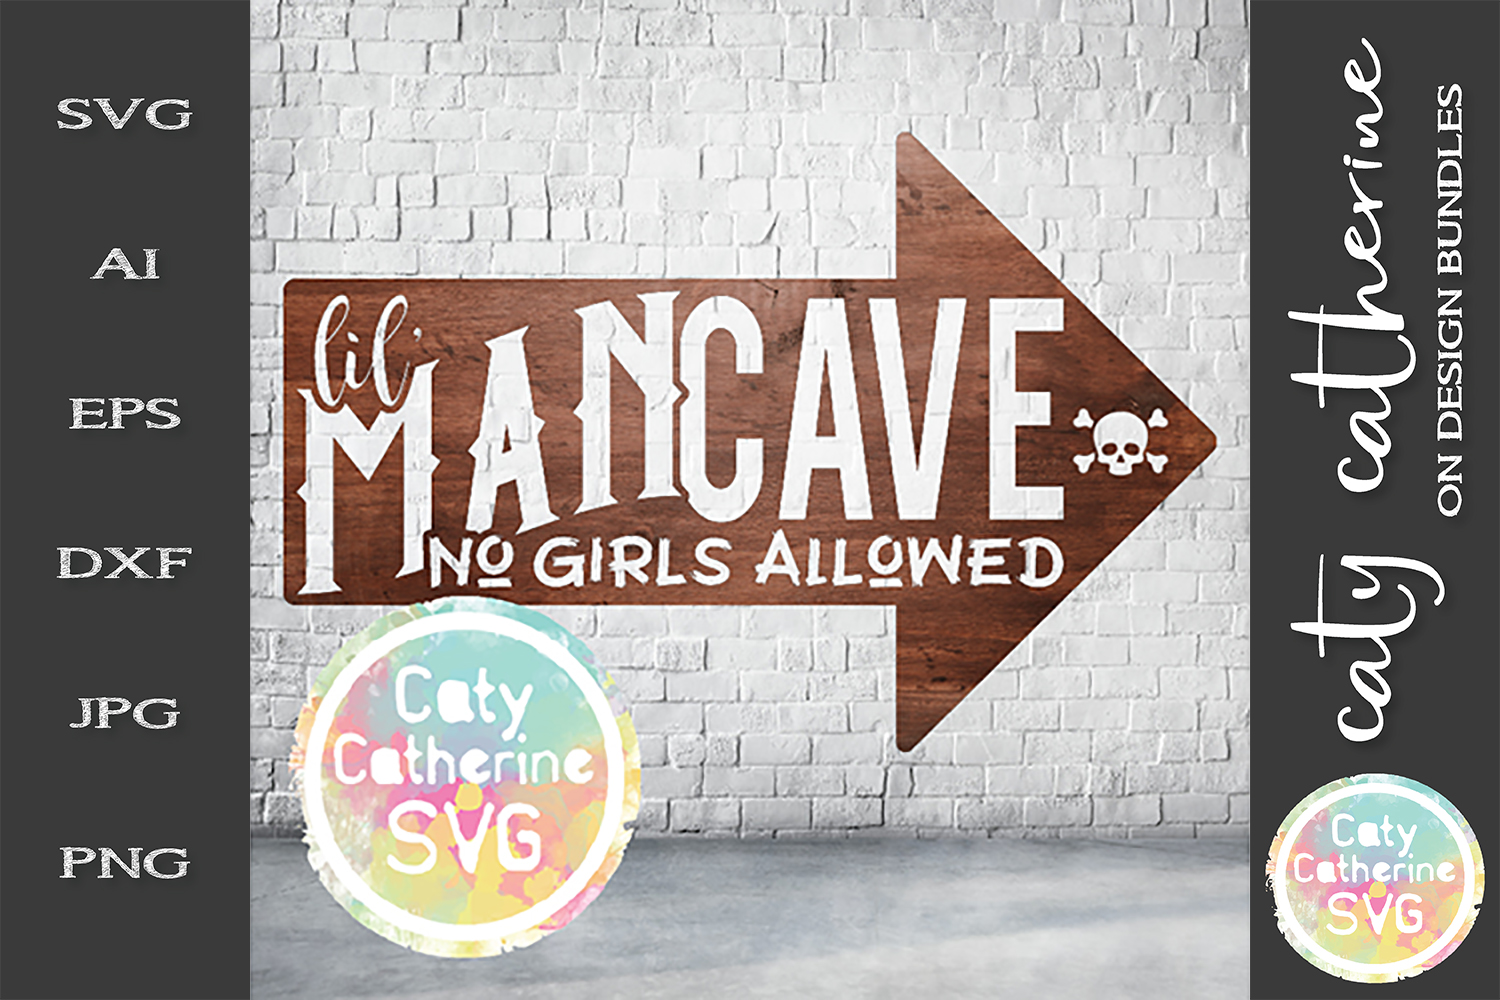 Little Lil' Man Cave No Girls Allowed Wood Sign SVG Cut File example image 1